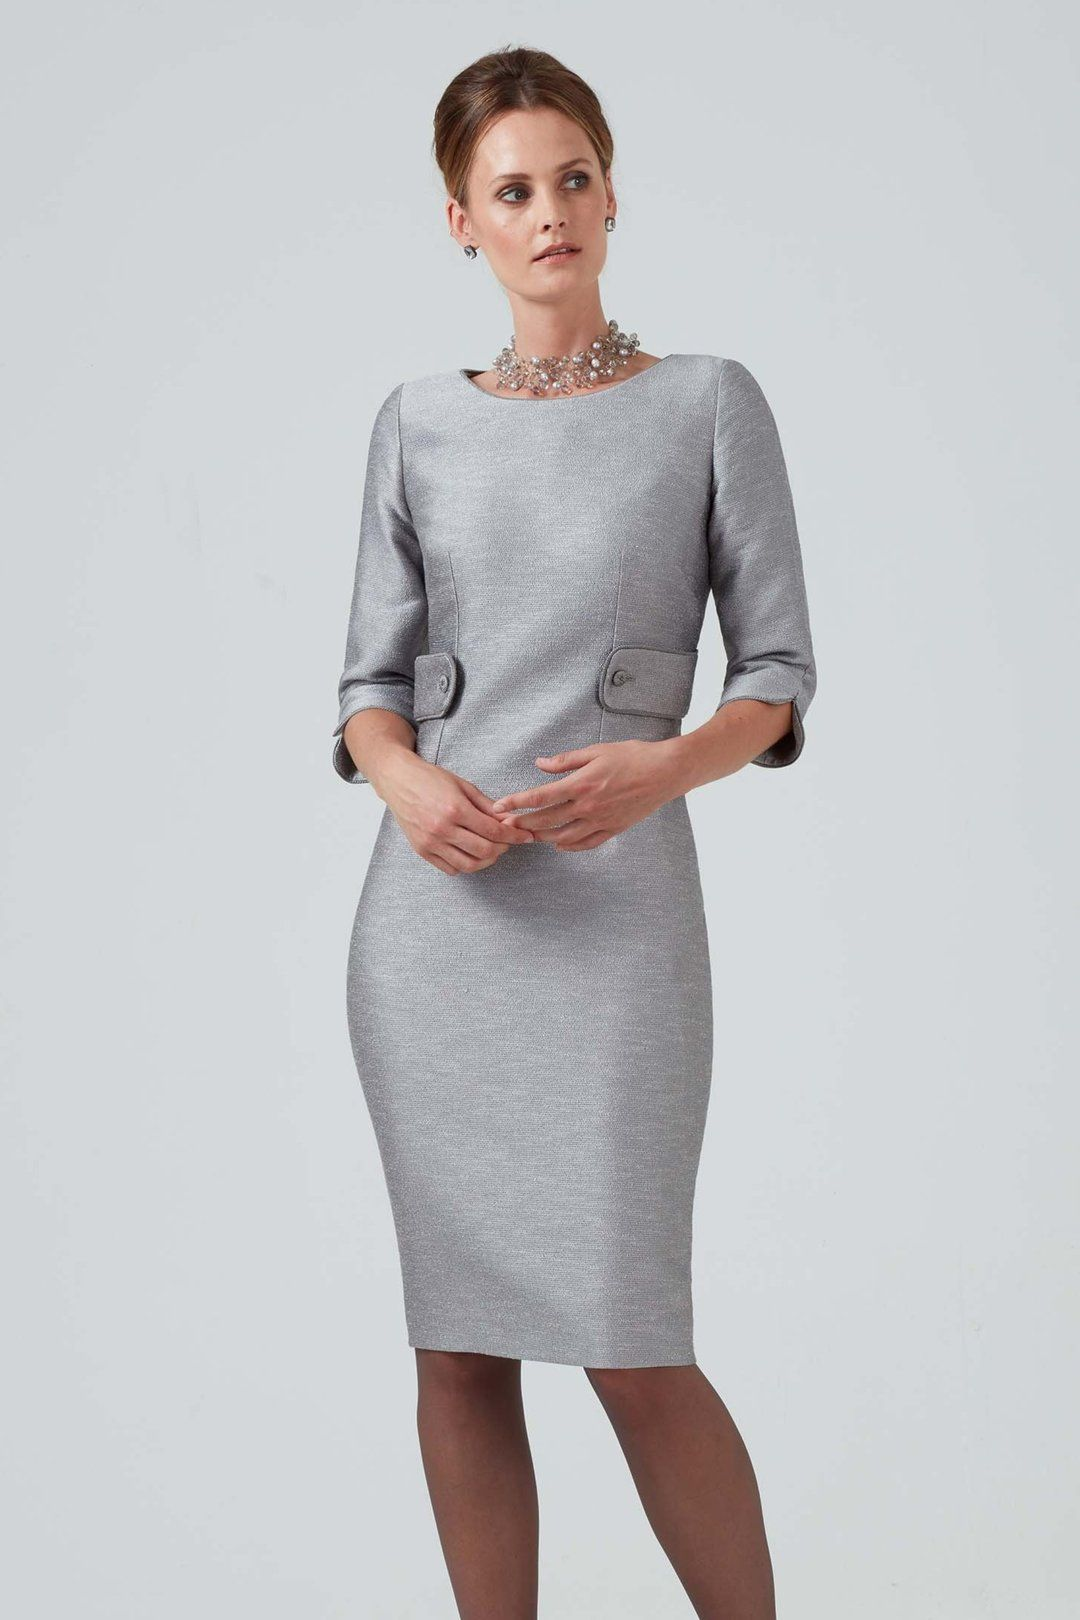 The Freya Winter dress with front waist tabs with buttons